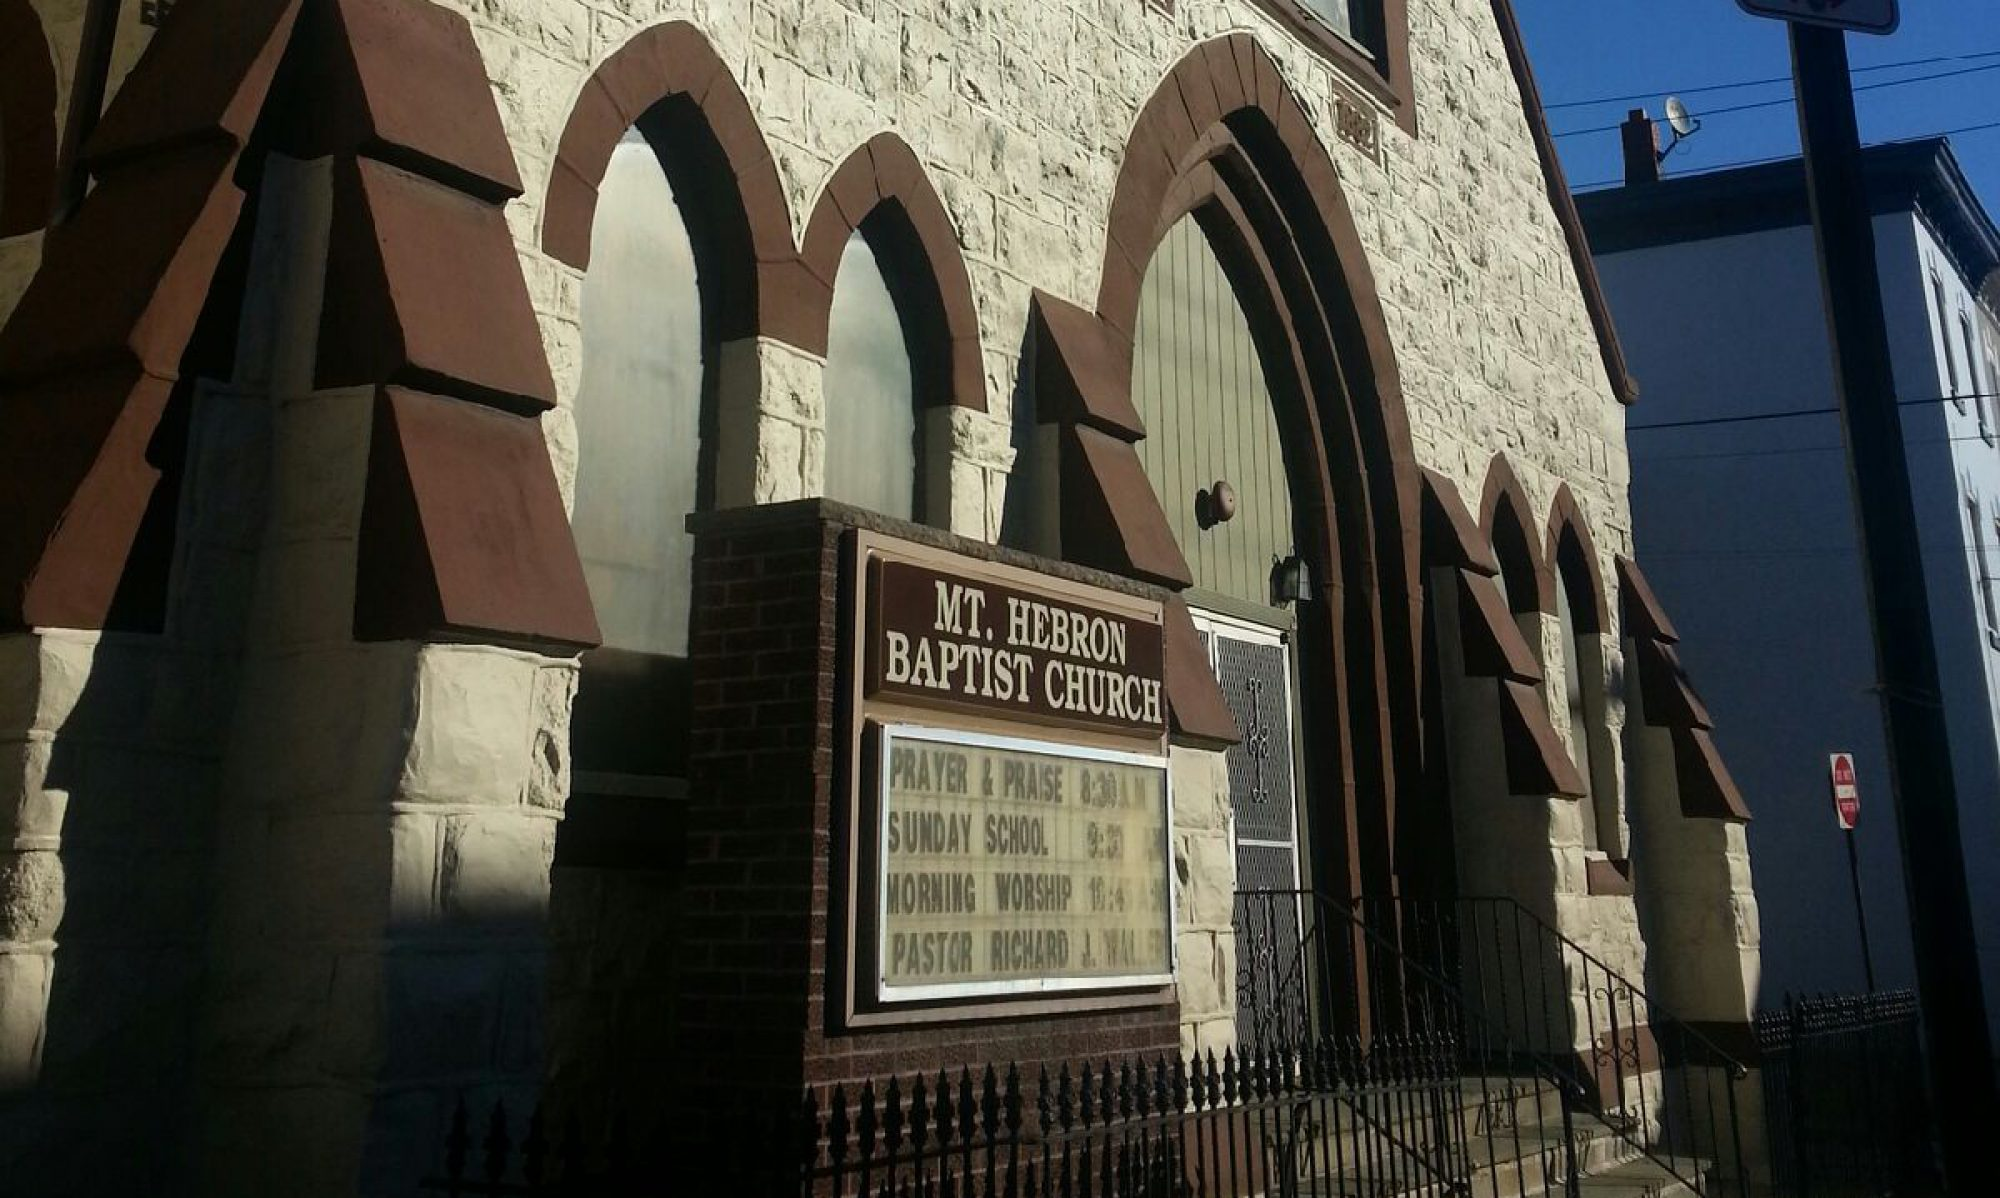 Mount Hebron Baptist Church